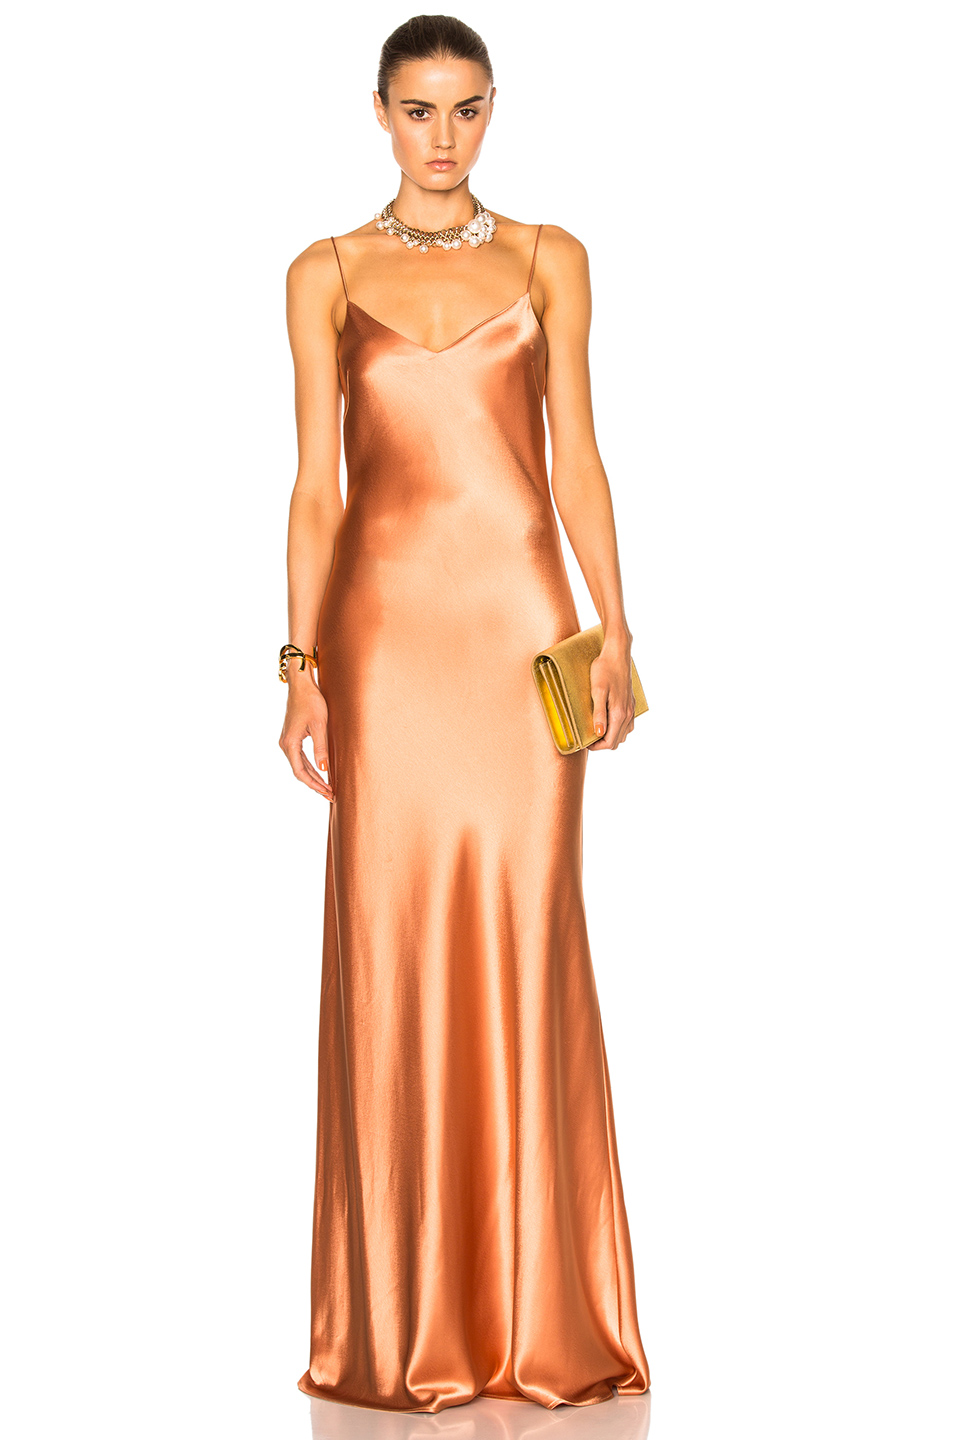 GALVAN Alcazar V-Neck Dress in Orange